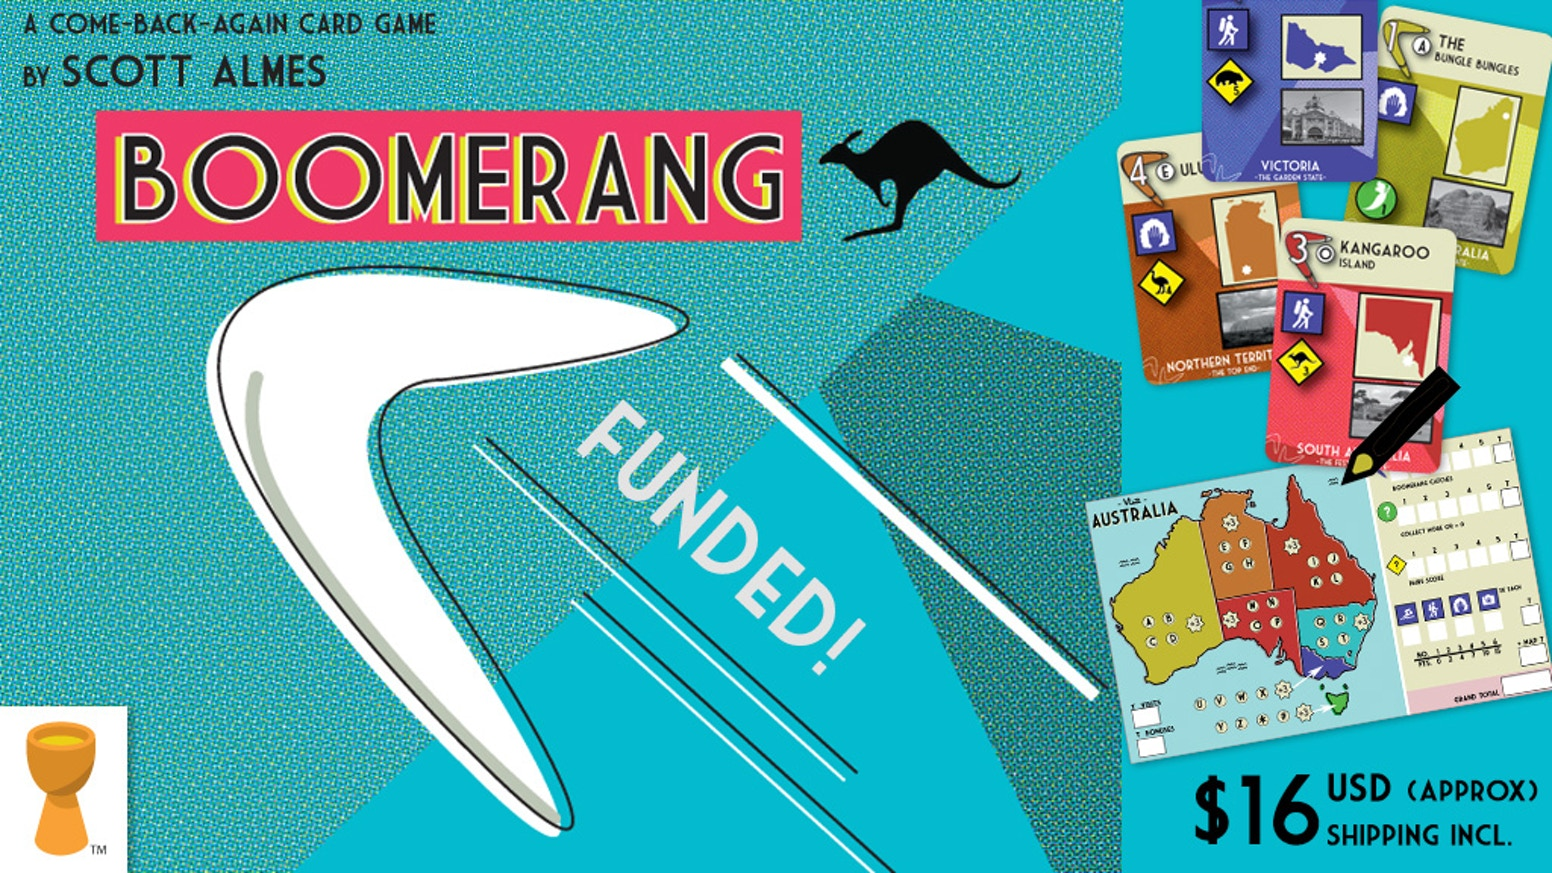 What will you see as you travel around 'Straya? Designed by Scott Almes, Boomerang mixes card-drafting with roll-and-write game play.